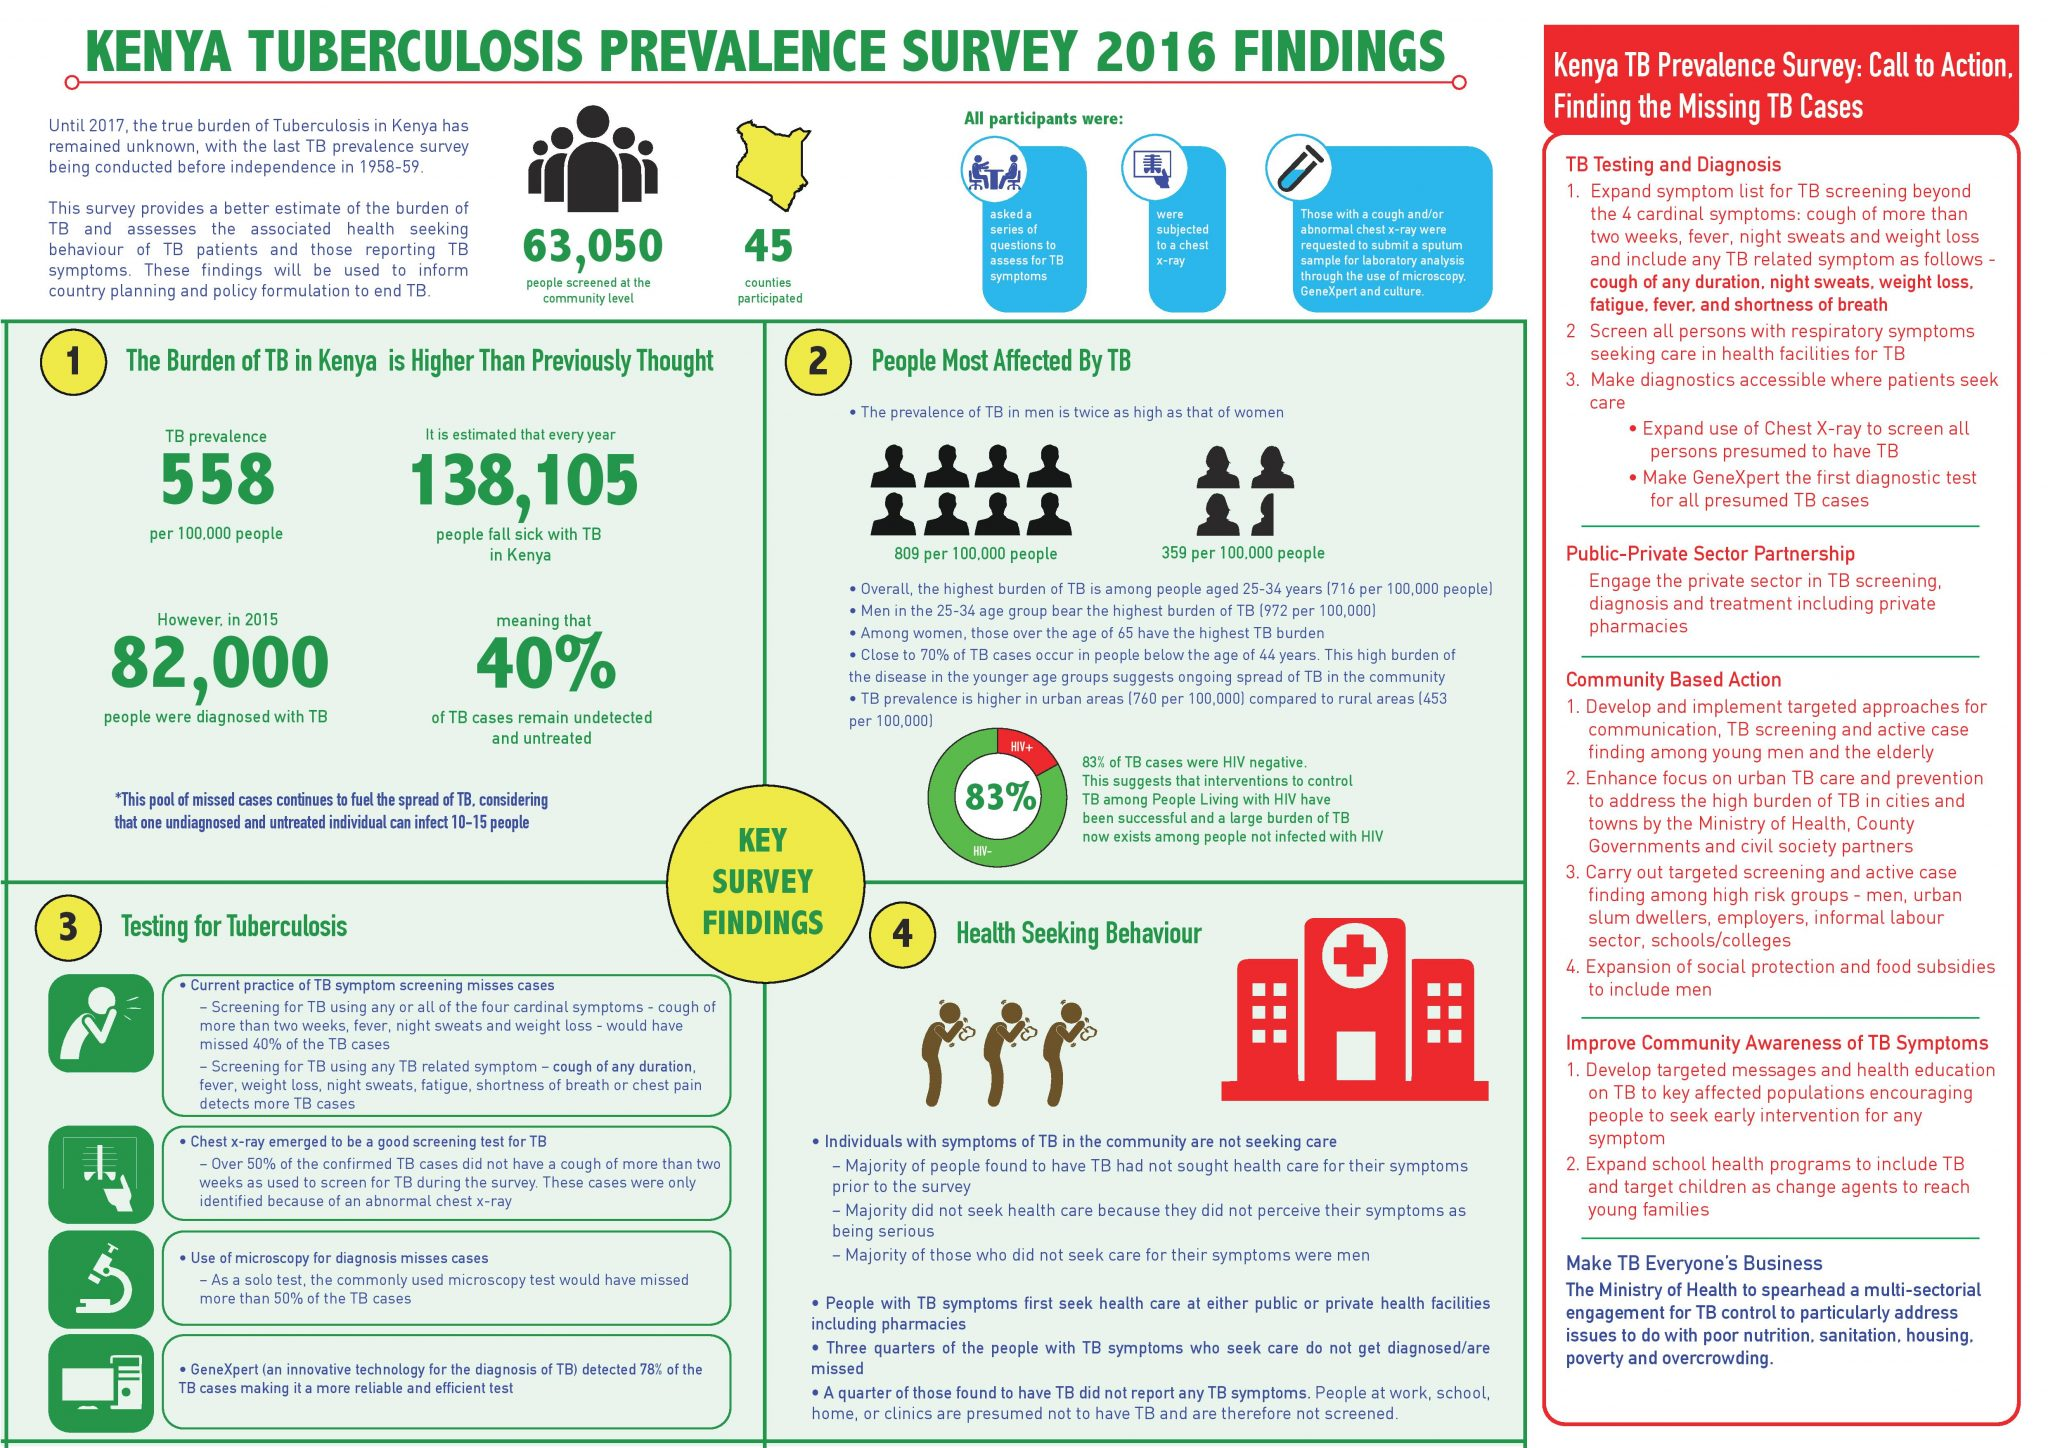 TB Prevalence Survey Findings and Call to Action